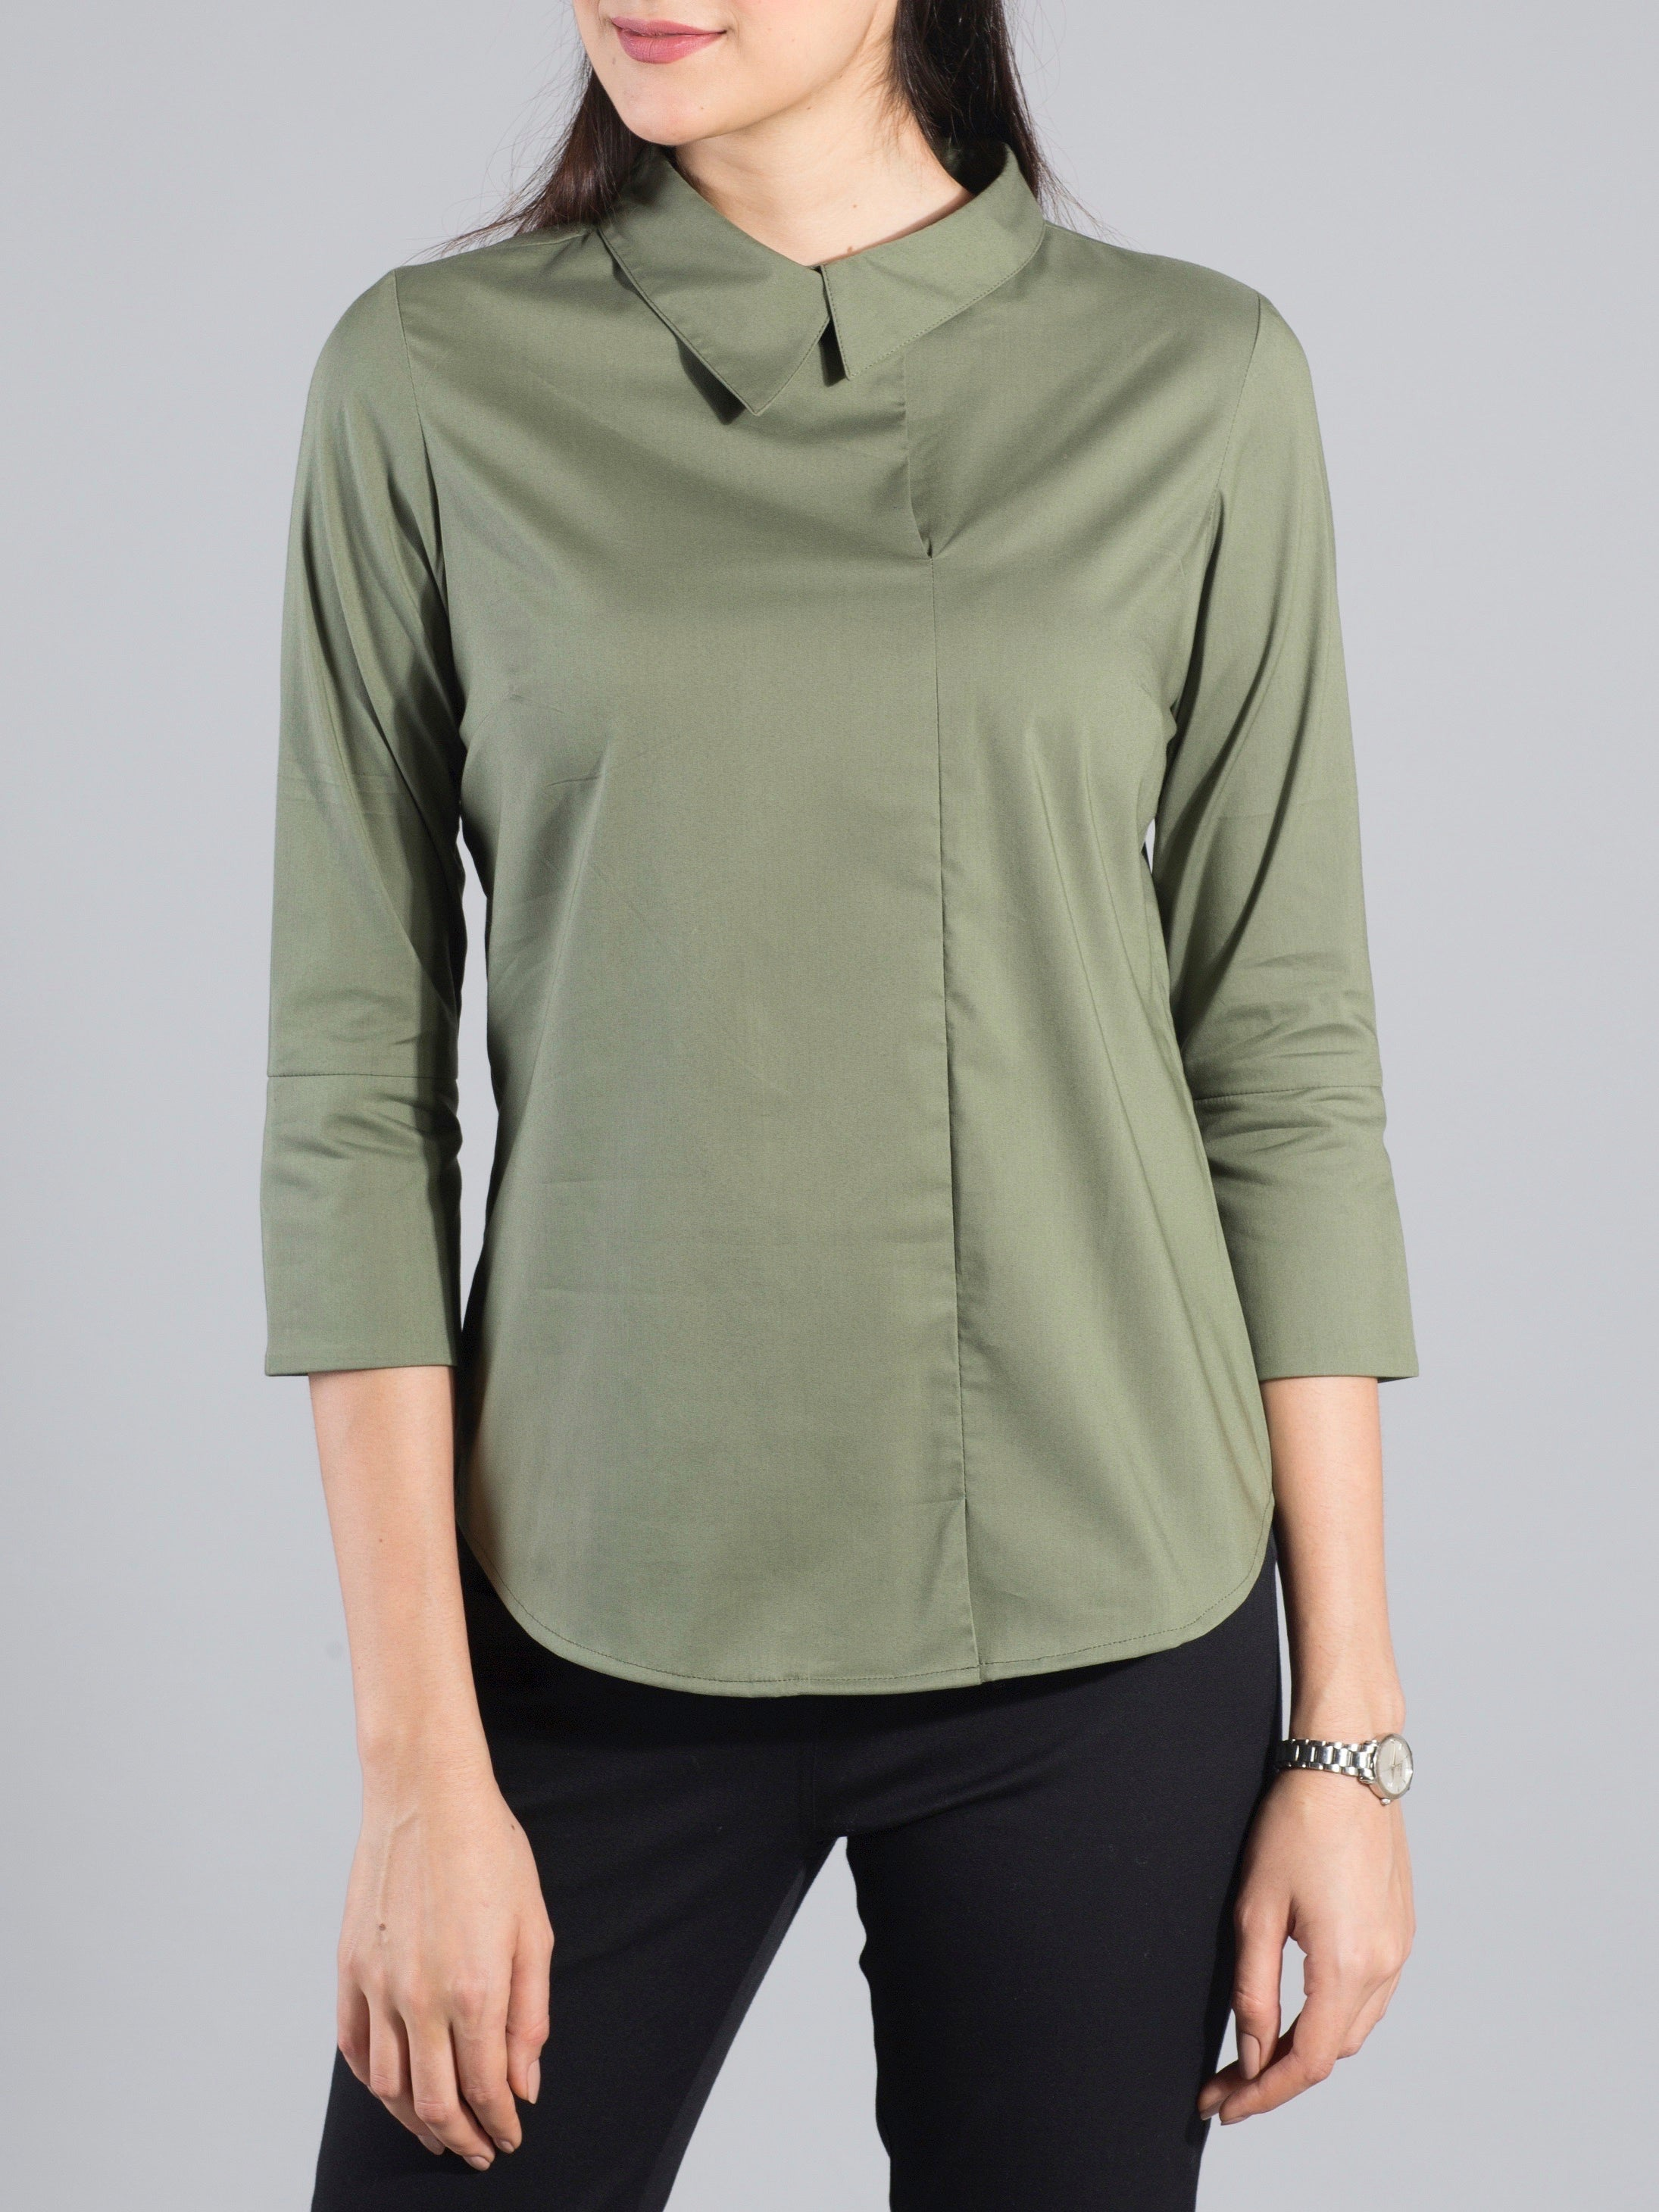 Quarter Sleeve Asymmetric Collar Top - Olive